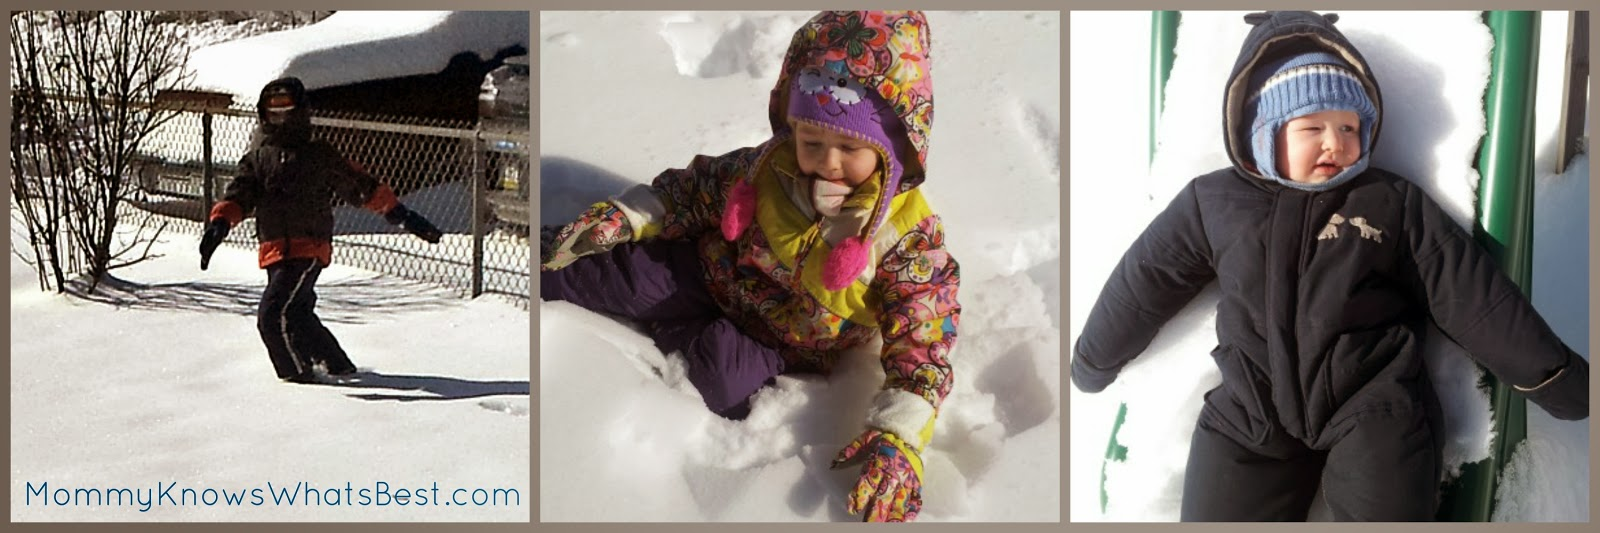 How to Keep Kids Warm and Dry When Playing in the Snow